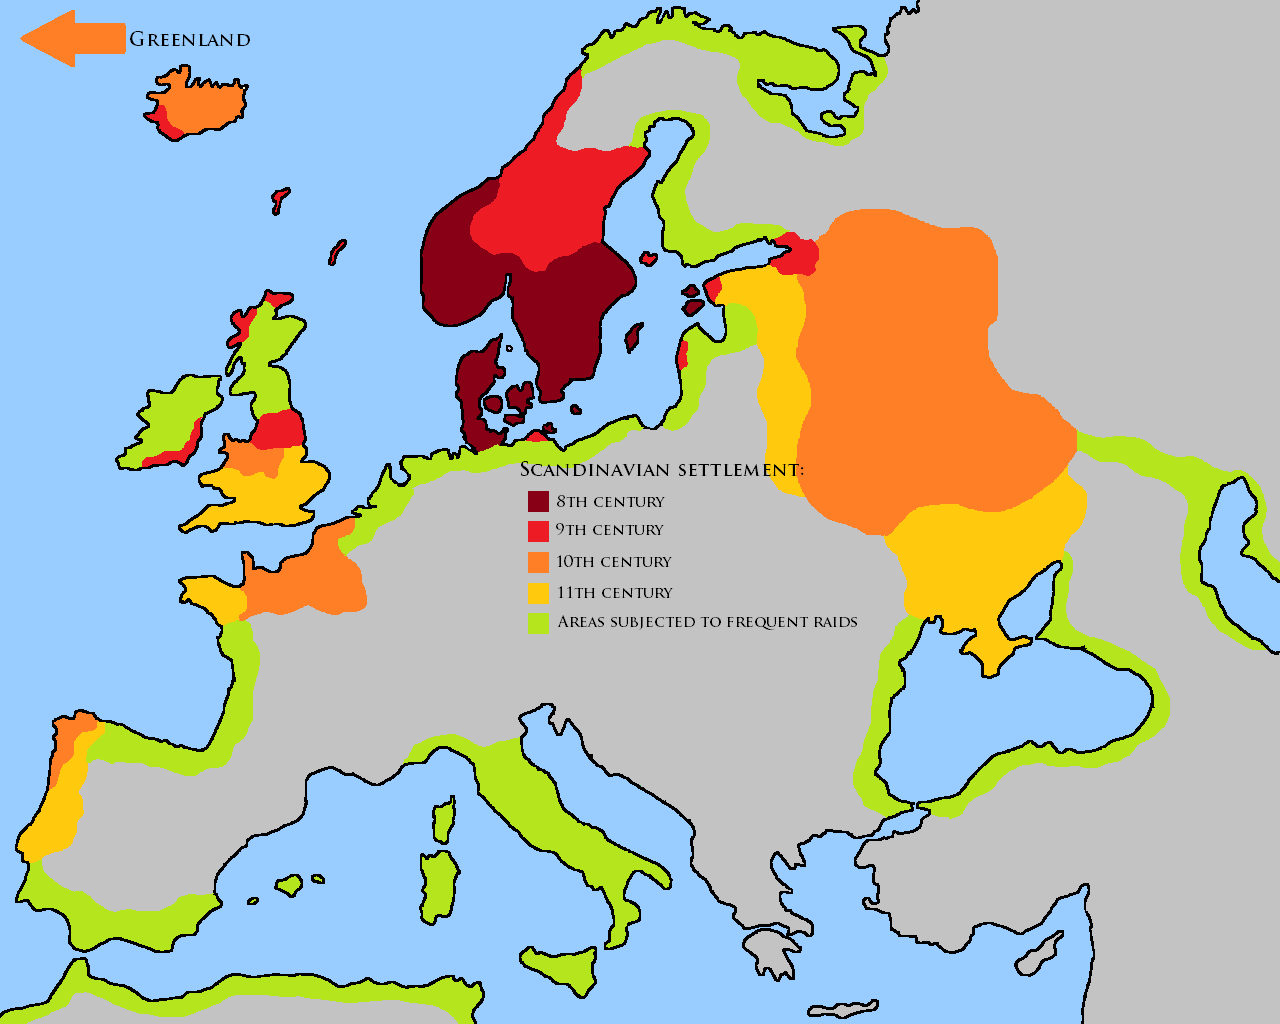 an analysis of the vikings raids in england Æthelred's order led to what is known as the st brice's day  and isotopic analysis of  among the viking territories) viking raids in england began in the.